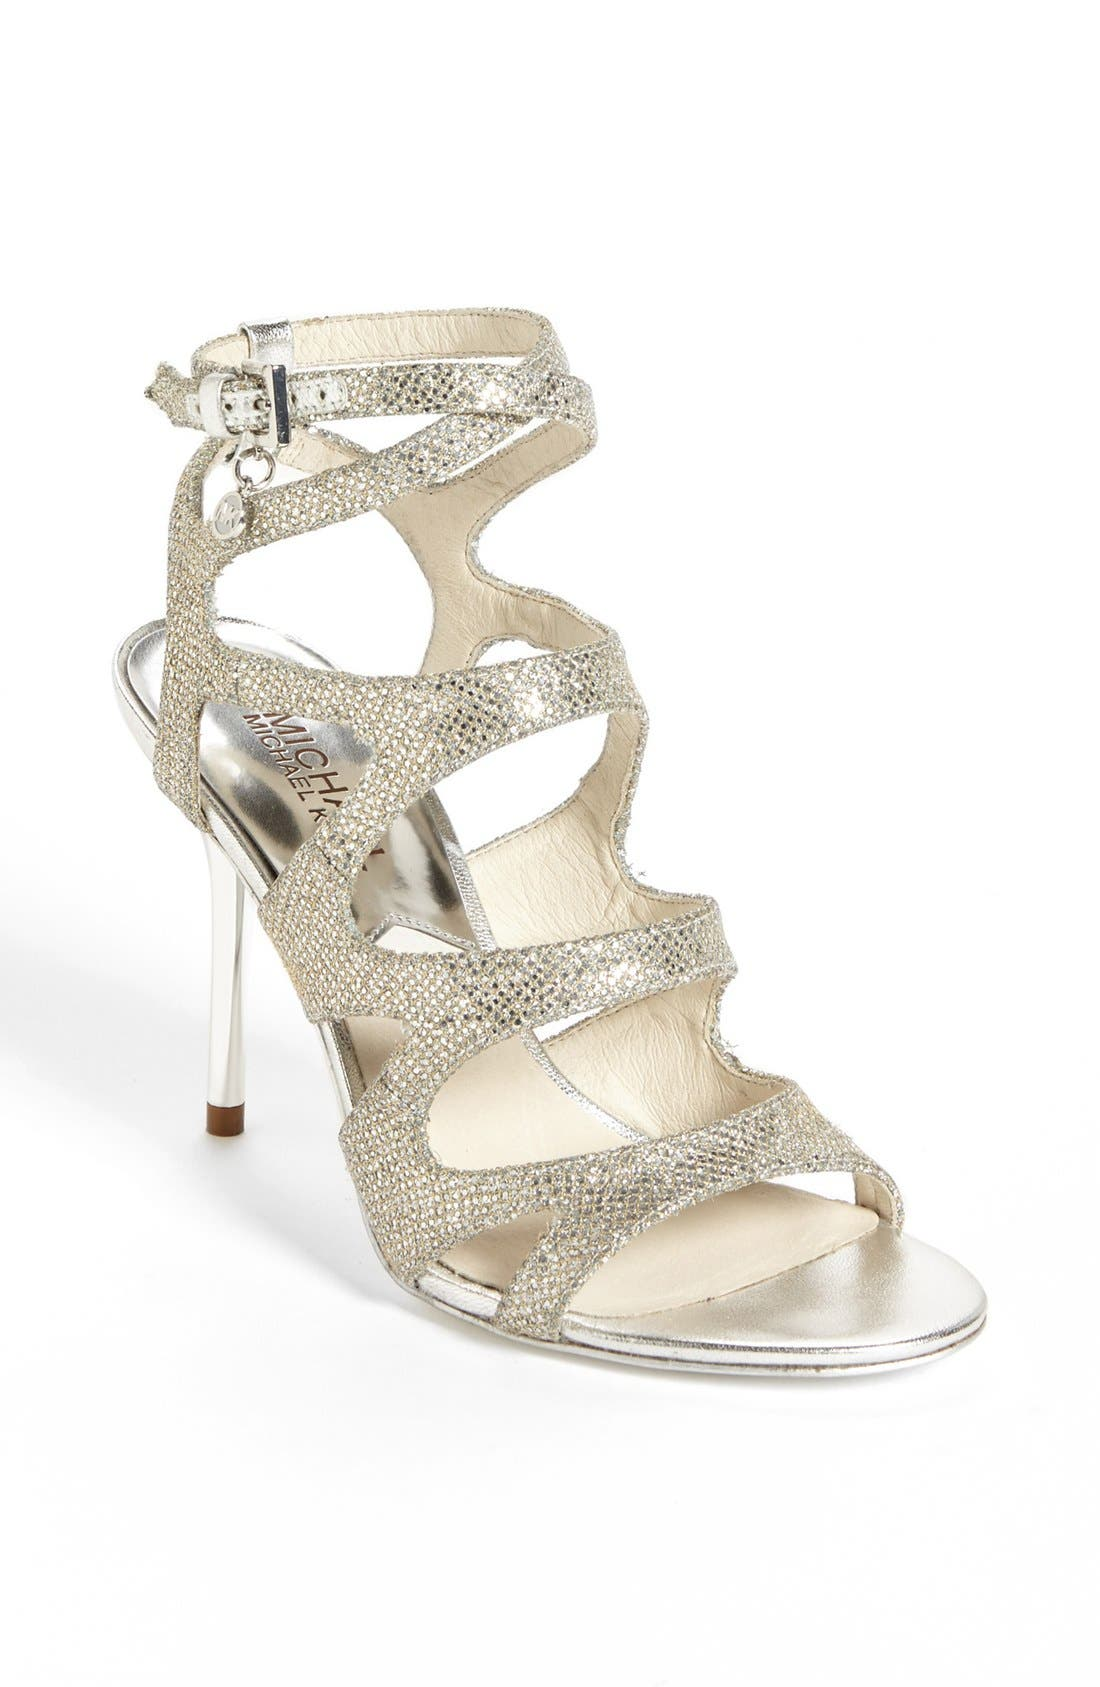 Alternate Image 1 Selected - MICHAEL Michael Kors 'Yvonne' Sandal